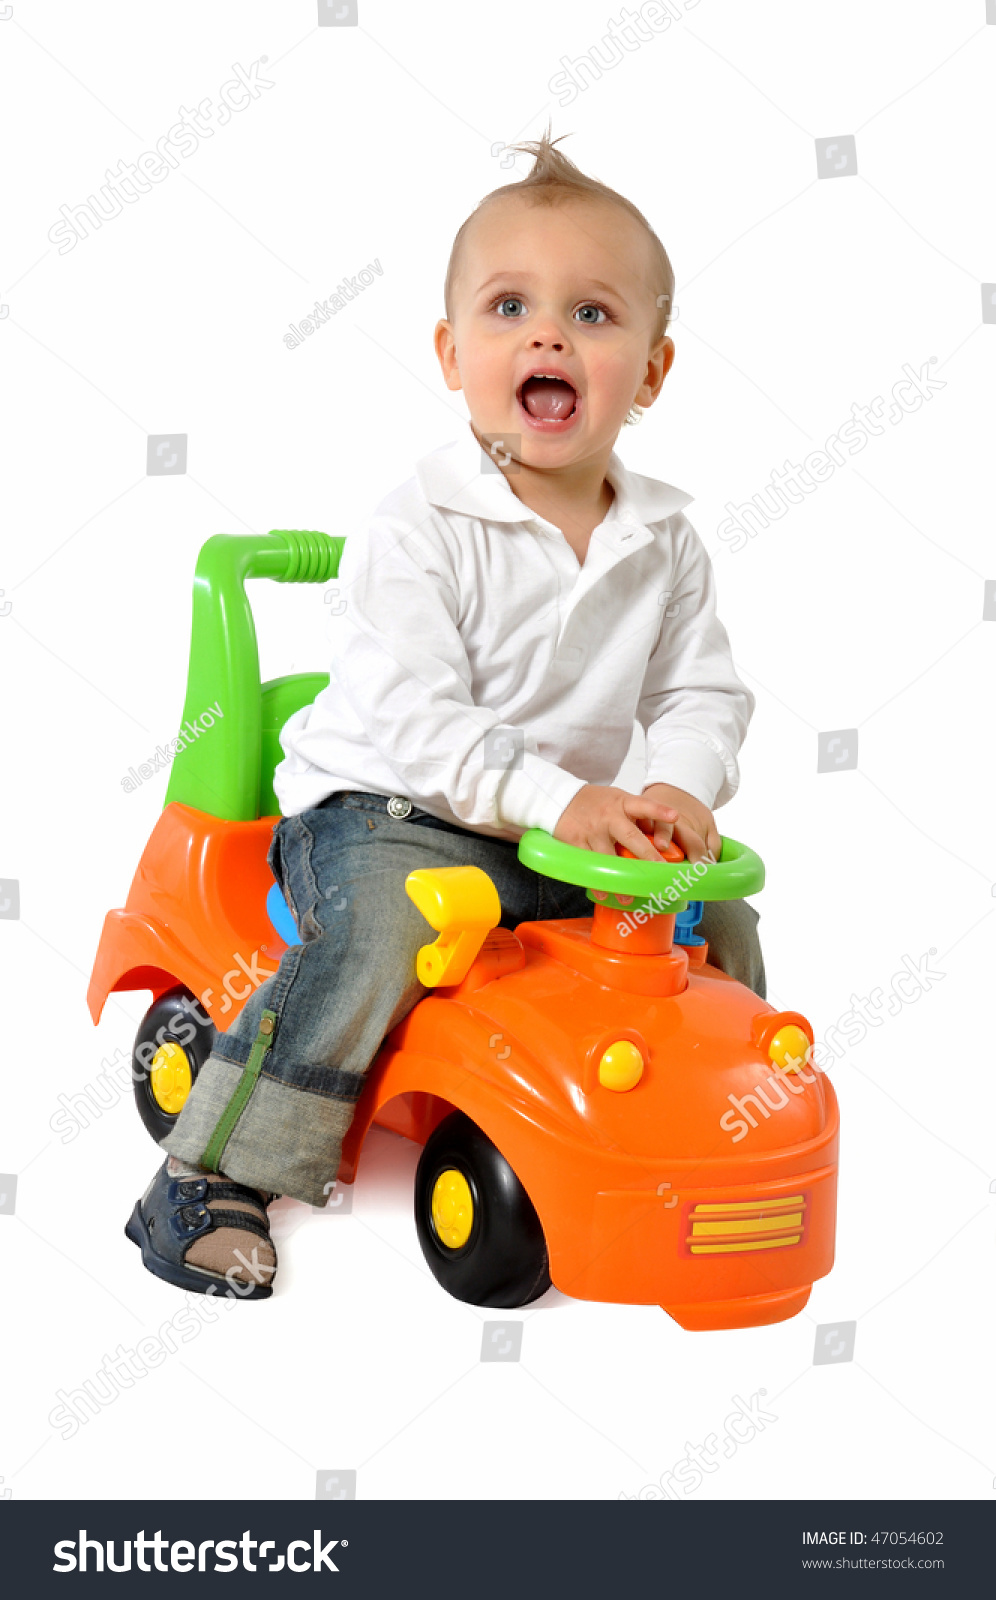 Baby Boy Toy Cars : Baby boy driving a toy car stock photo shutterstock